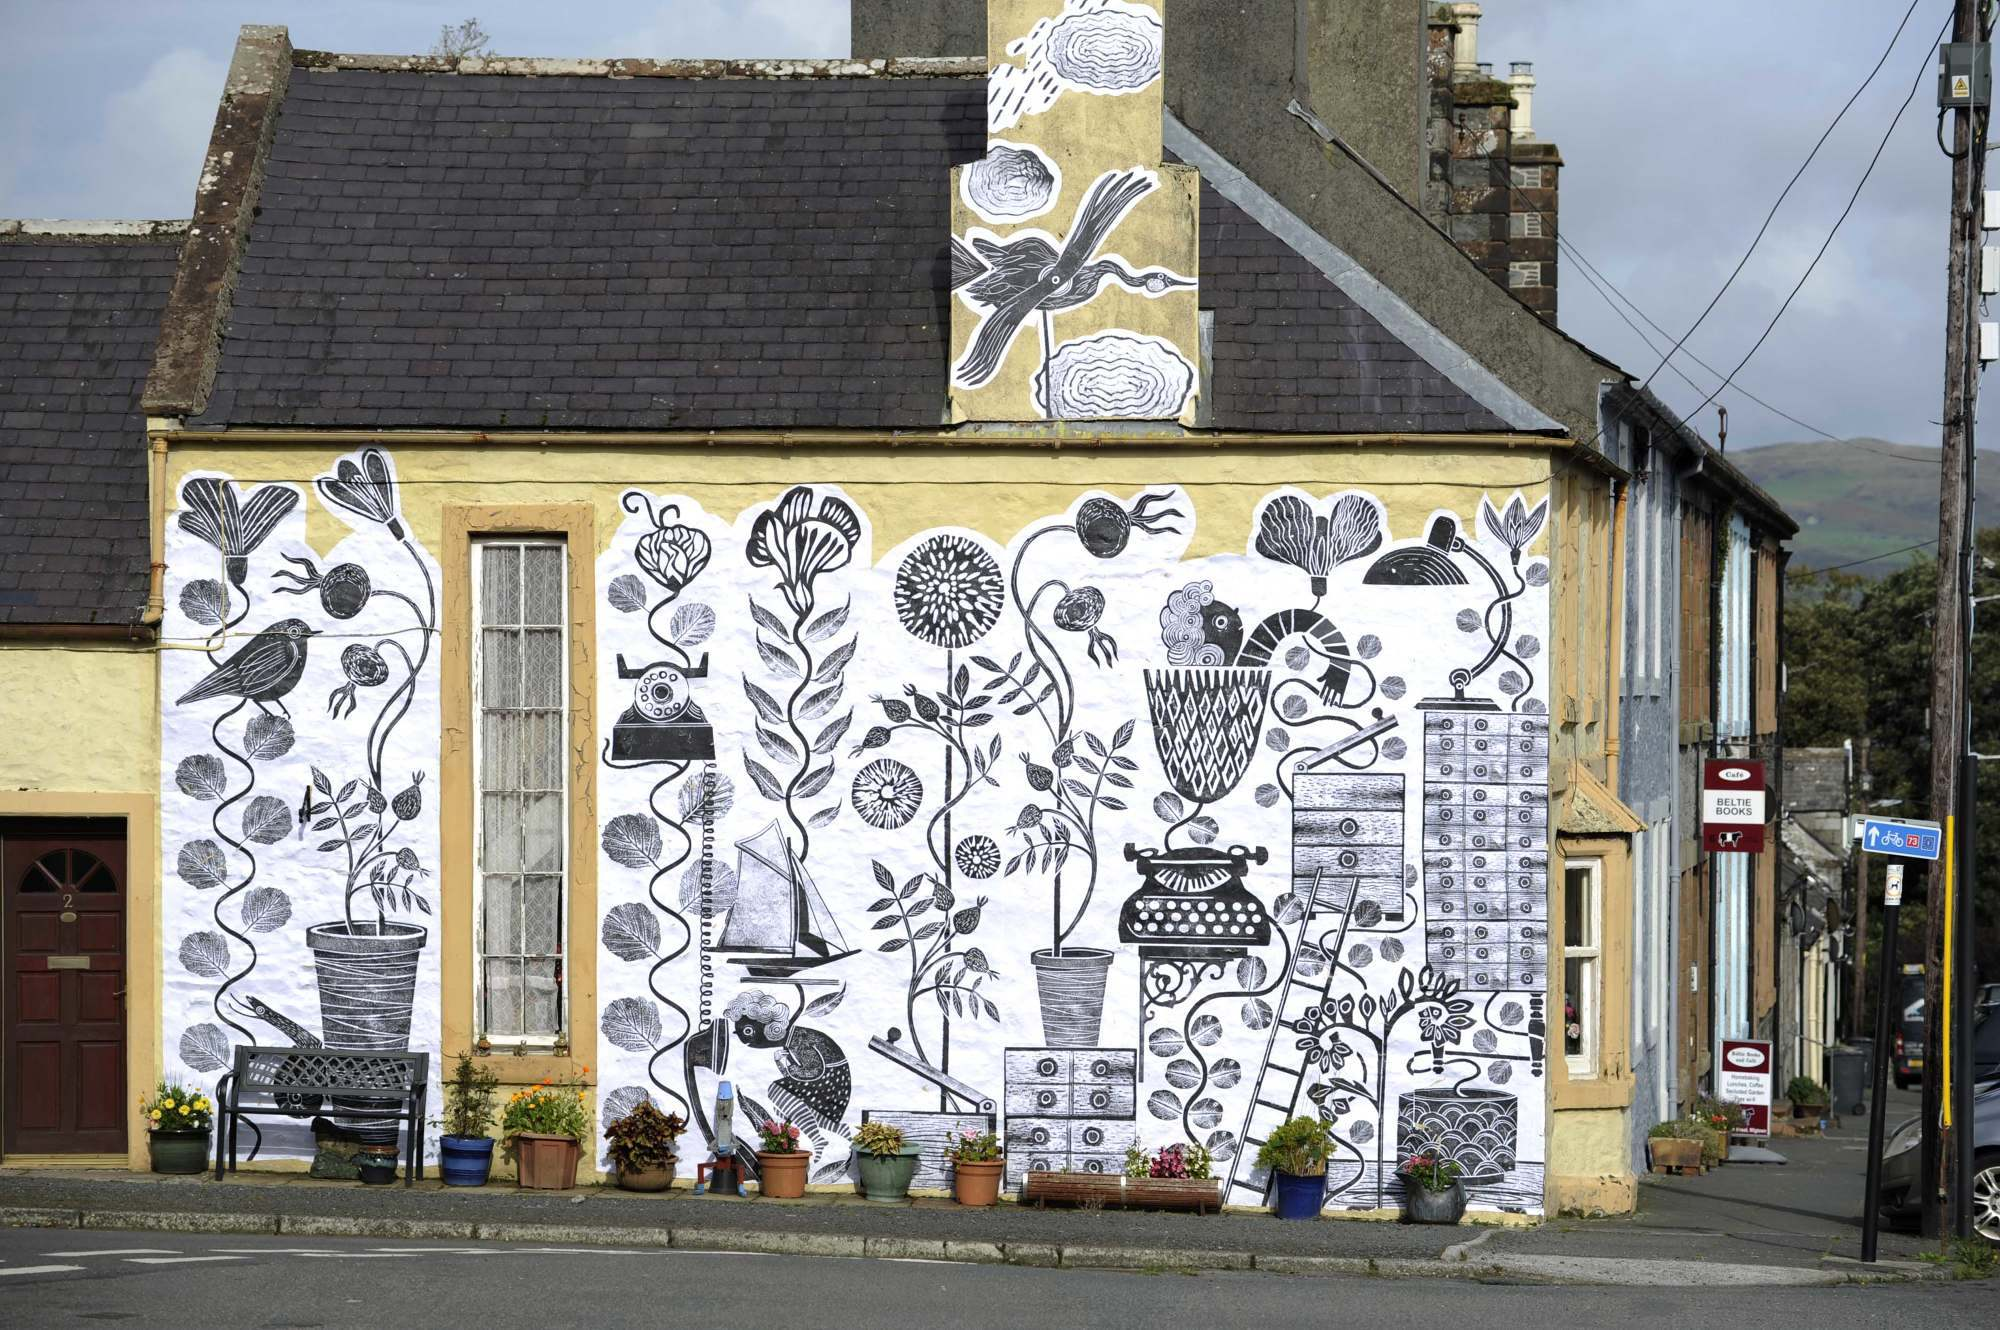 Free Wallpaper Murals At Wigtown Book Festival Med Res 11 8 2000 C